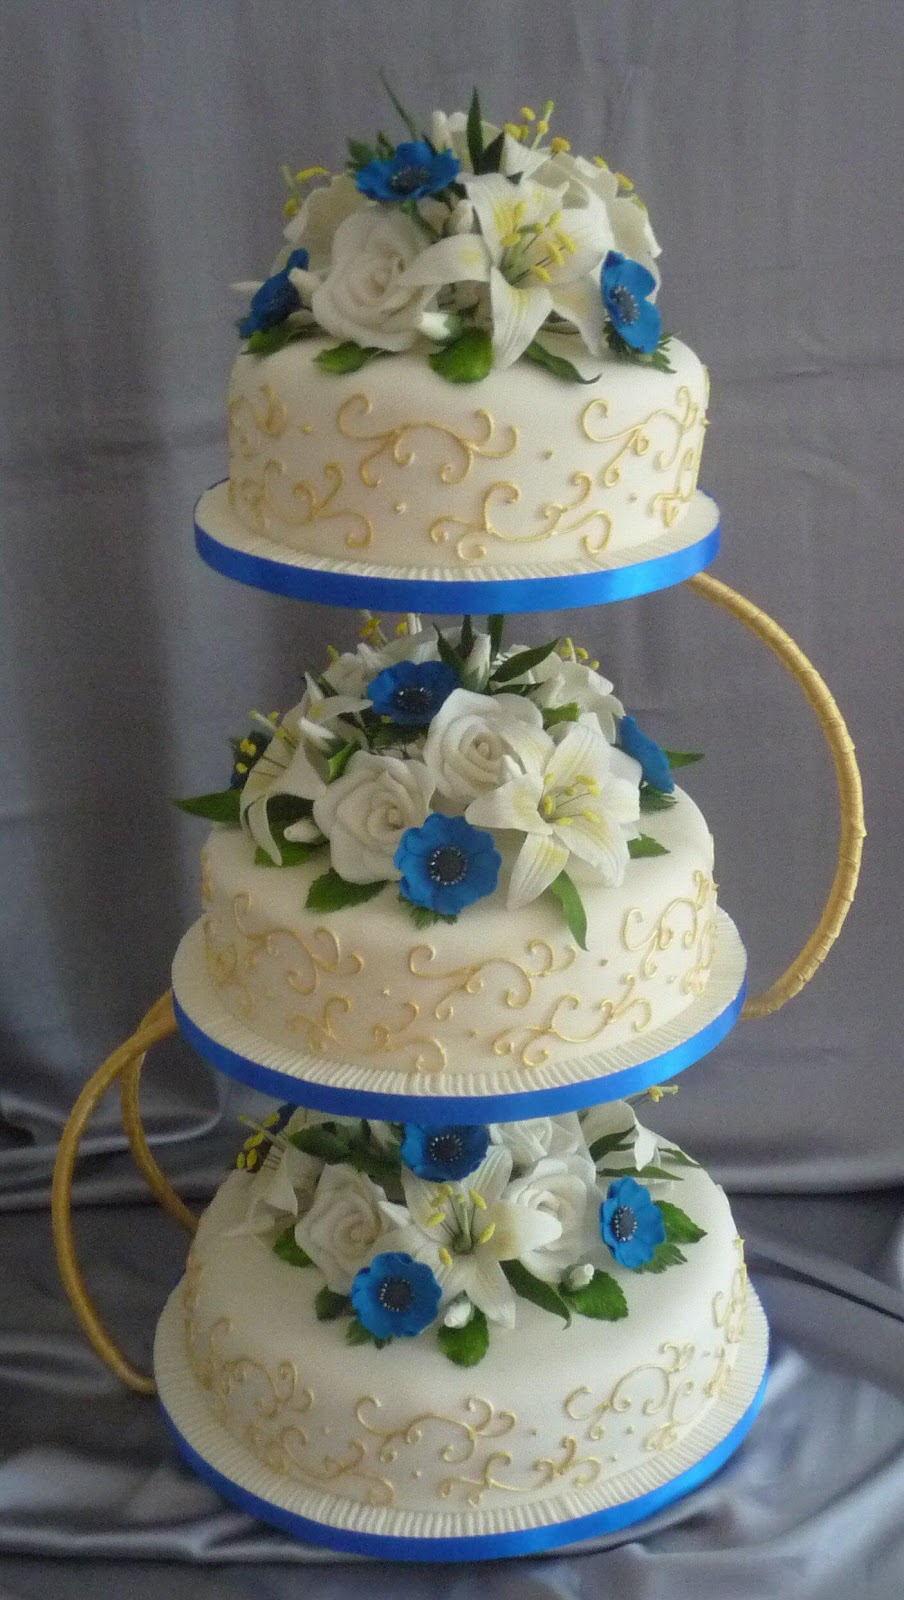 Latest Cake Design For Girl : wedding cakes by franziska: blue and gold wedding cake design